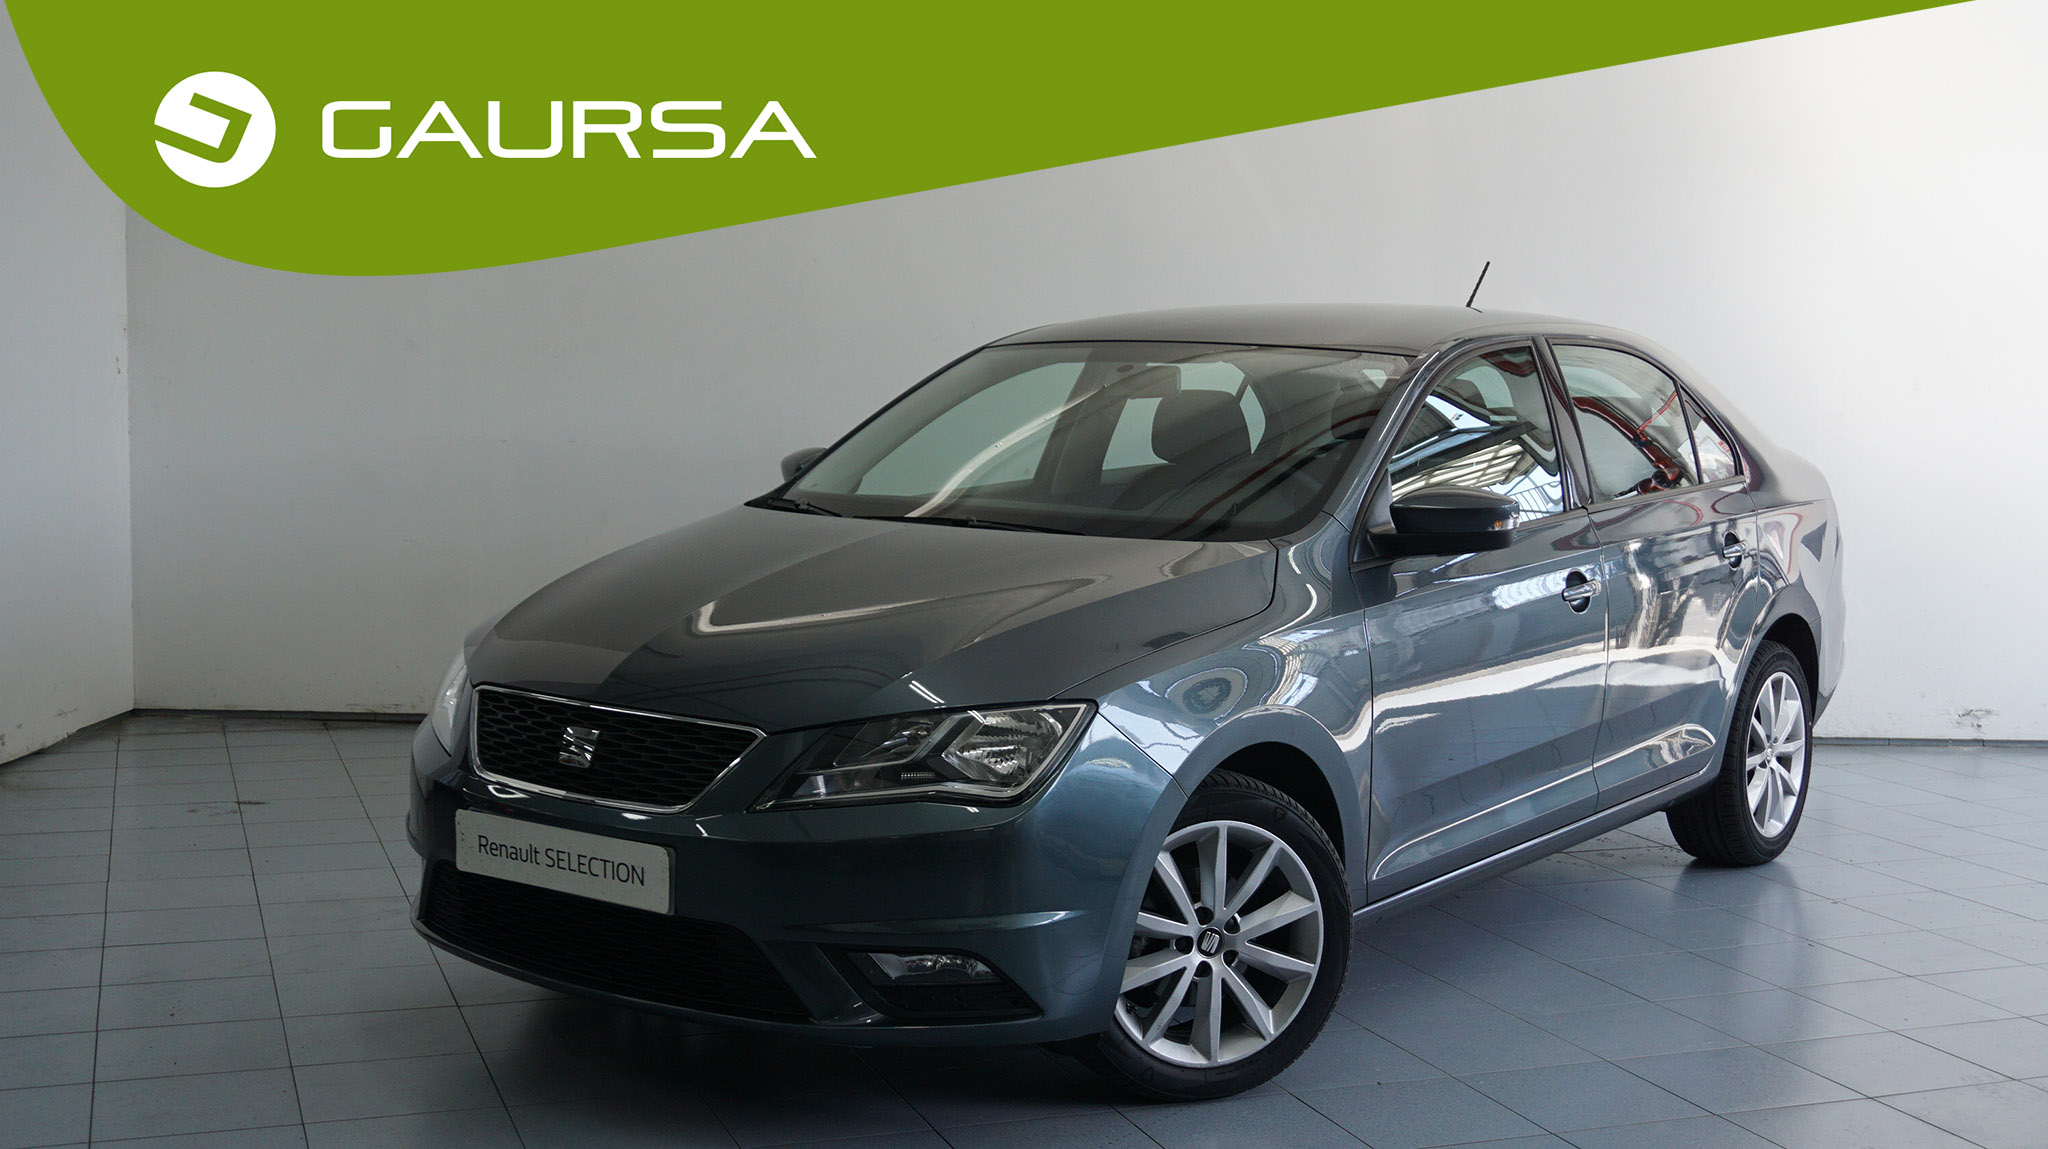 SEAT TOLEDO 1.2 TSI 90 PS REFERENCE PLUS LIMITED 90 5P